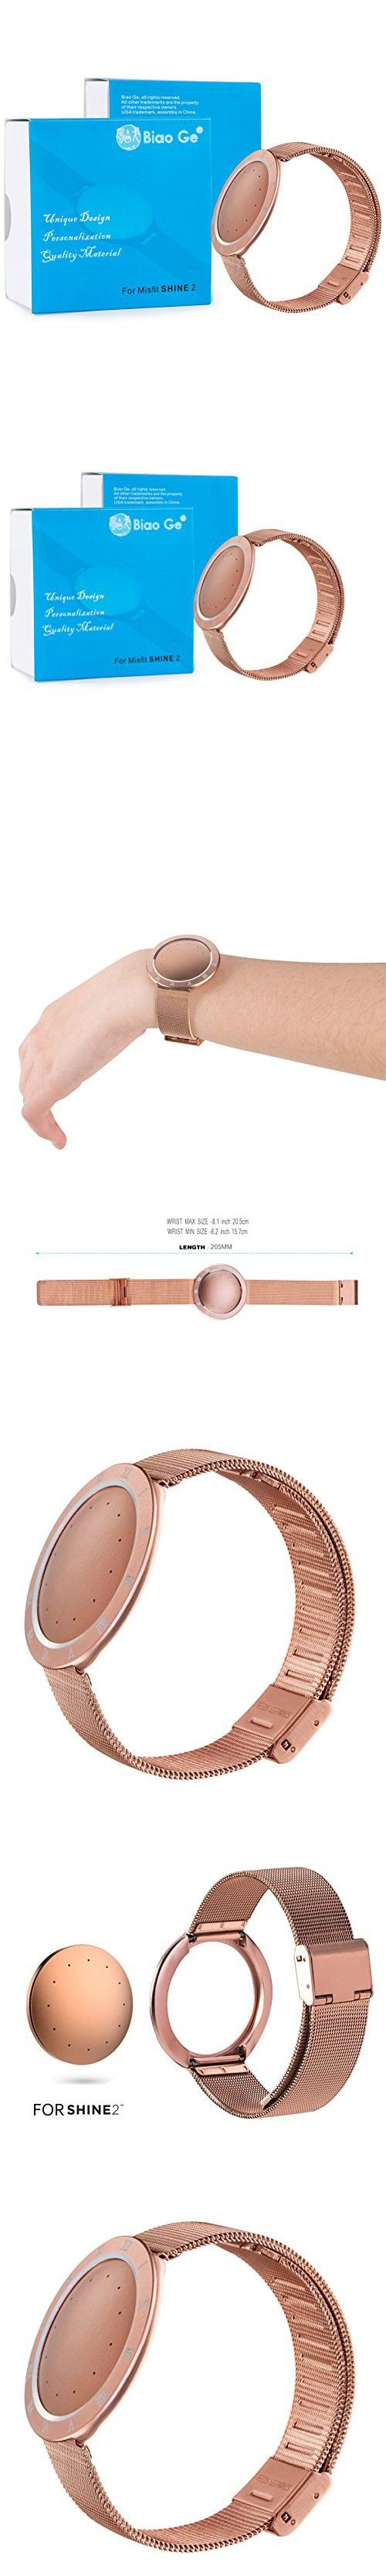 Shine 2 Replacement Band, For Misfit Wearables Shine 2 Fitness Tracker & Sleep Monitor, Biaoge Stainless Steel Mesh Bracelet Strap for SHINE 2 Rose Gold